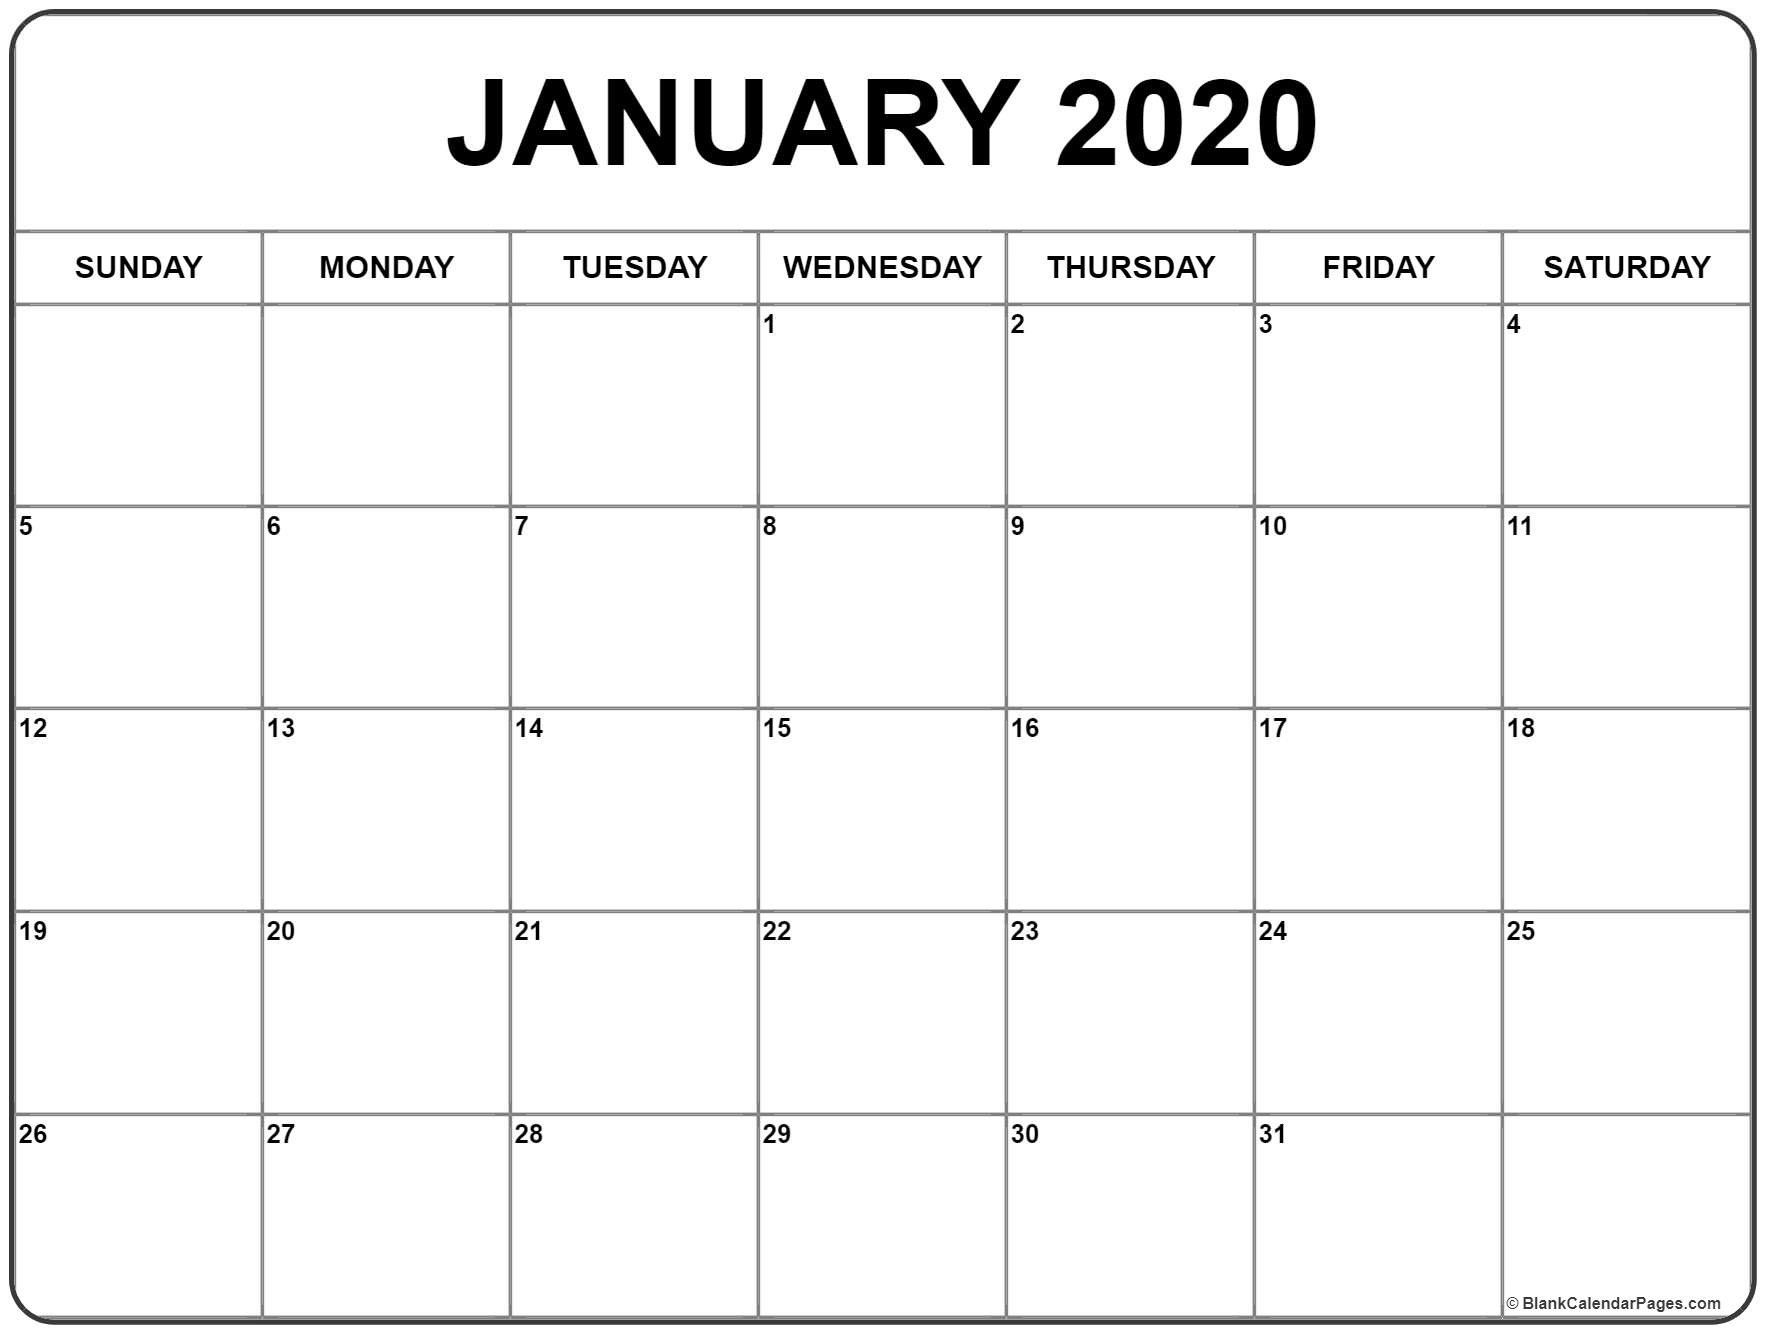 January 2020 Calendar 56 Templates Of 2020 Printable January 2020 Blank Calendar Calendar Printables Free Printable Calendar Monthly Monthly Calendar Printable